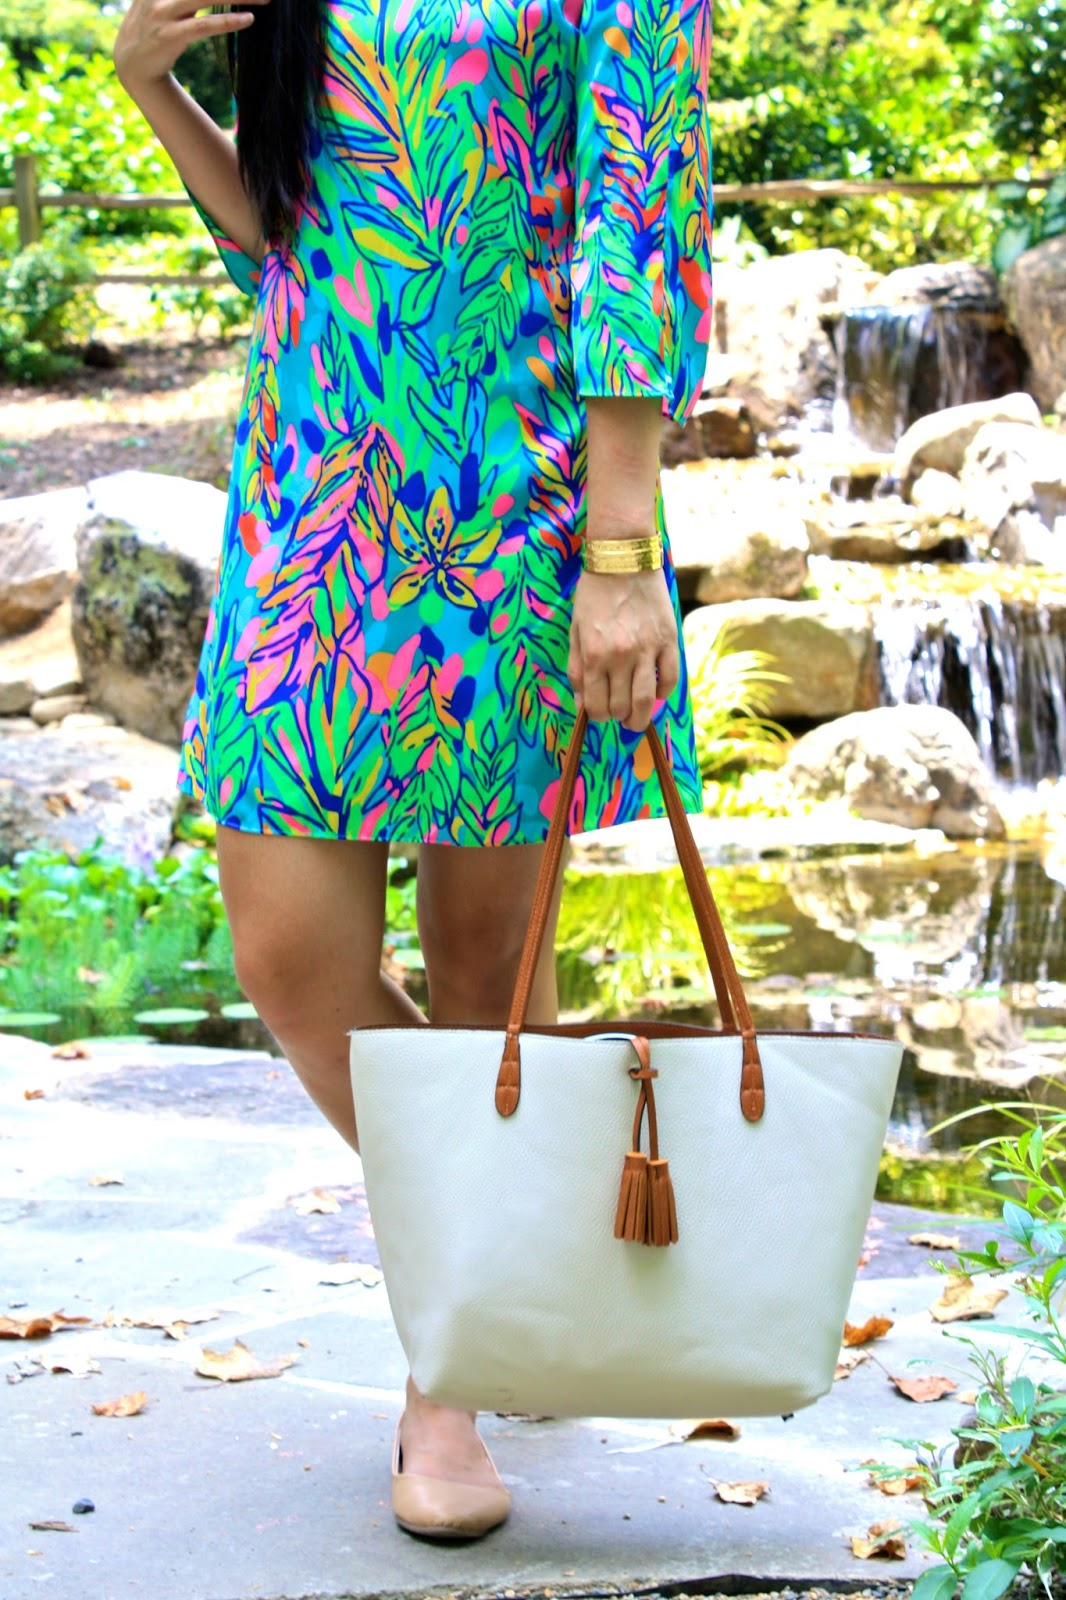 Lilly Pulitzer Hot Spot printed dress